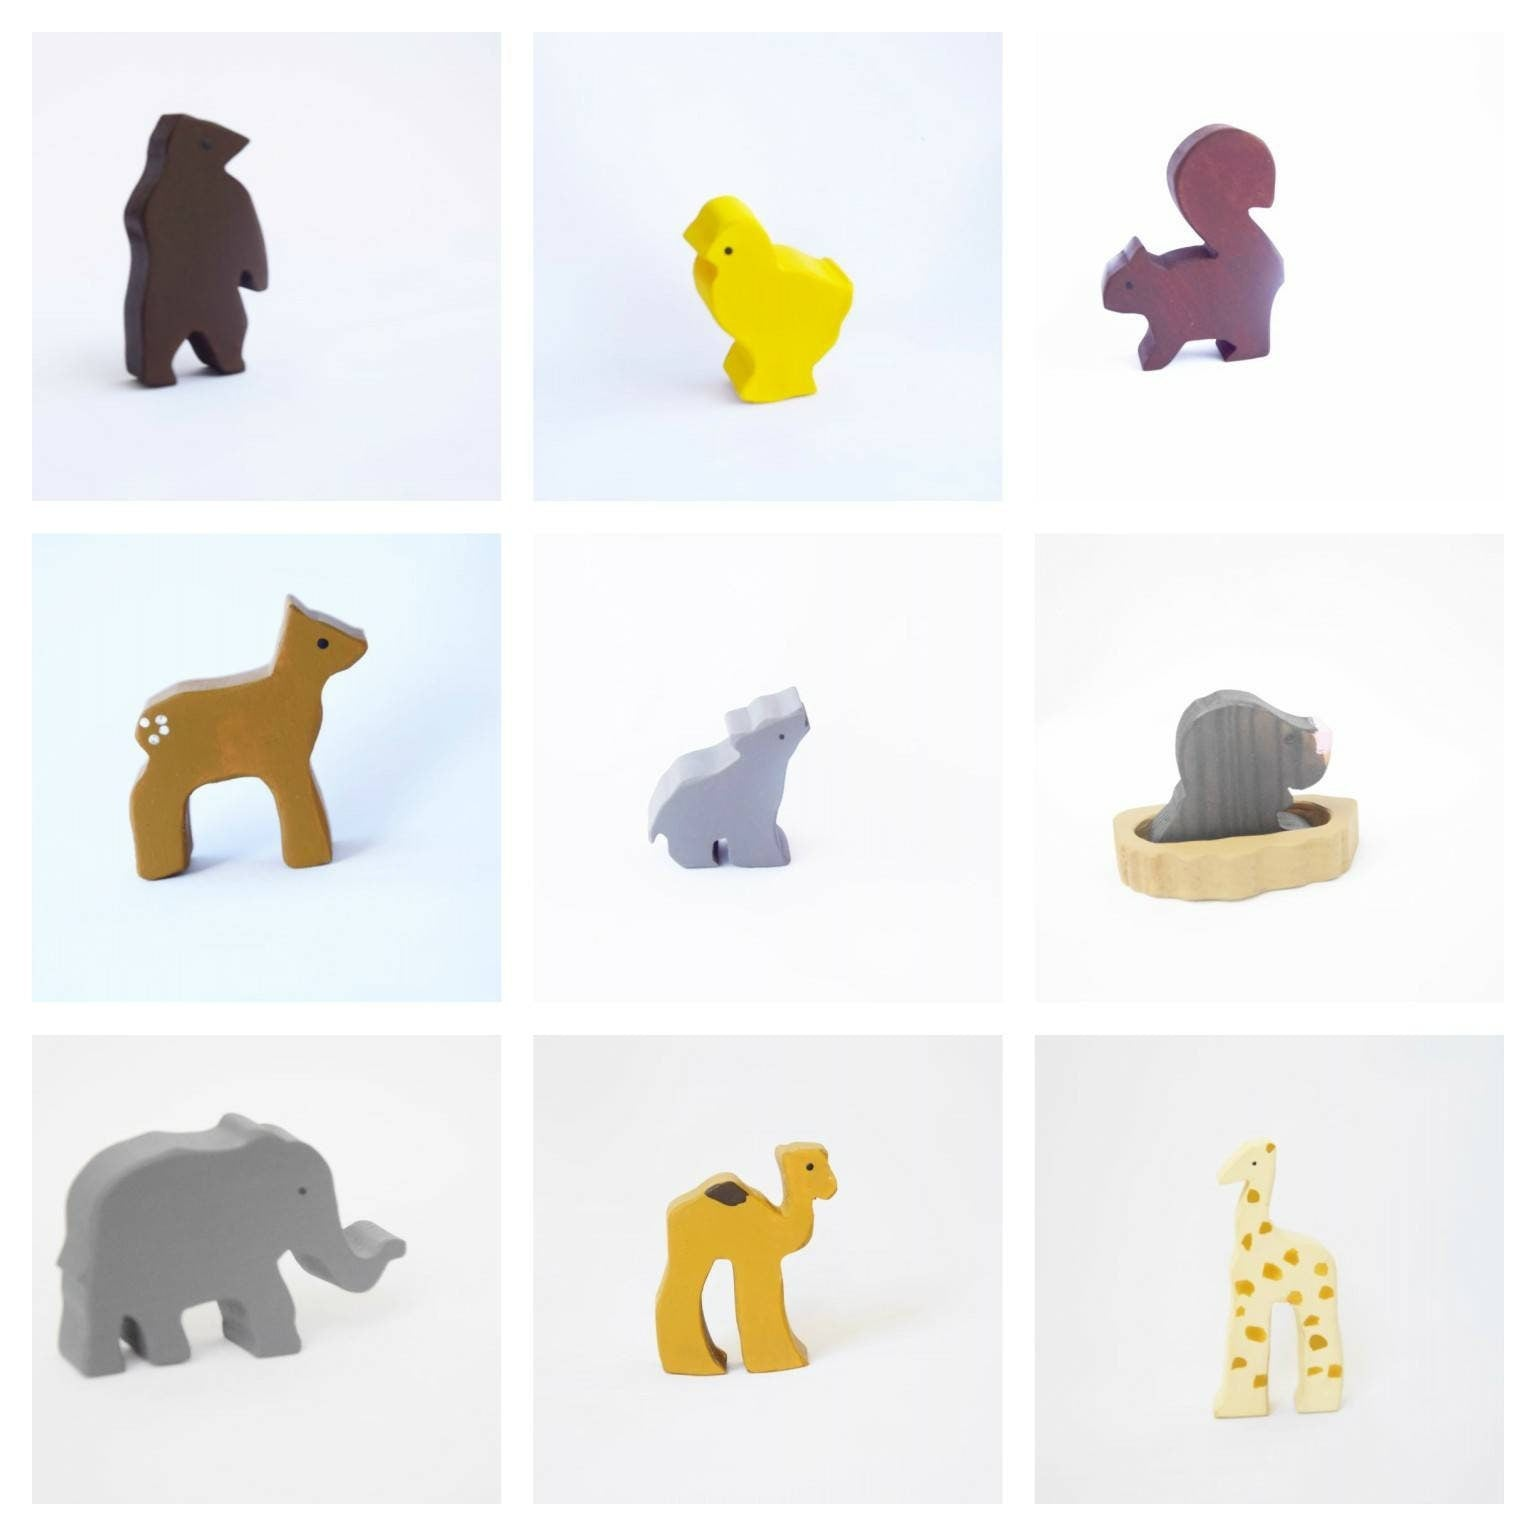 baby animals, wooden animals toy, waldorf animals, christmas gift, advent calendar gift, stocking filler, gift for kids, waldorf inspired